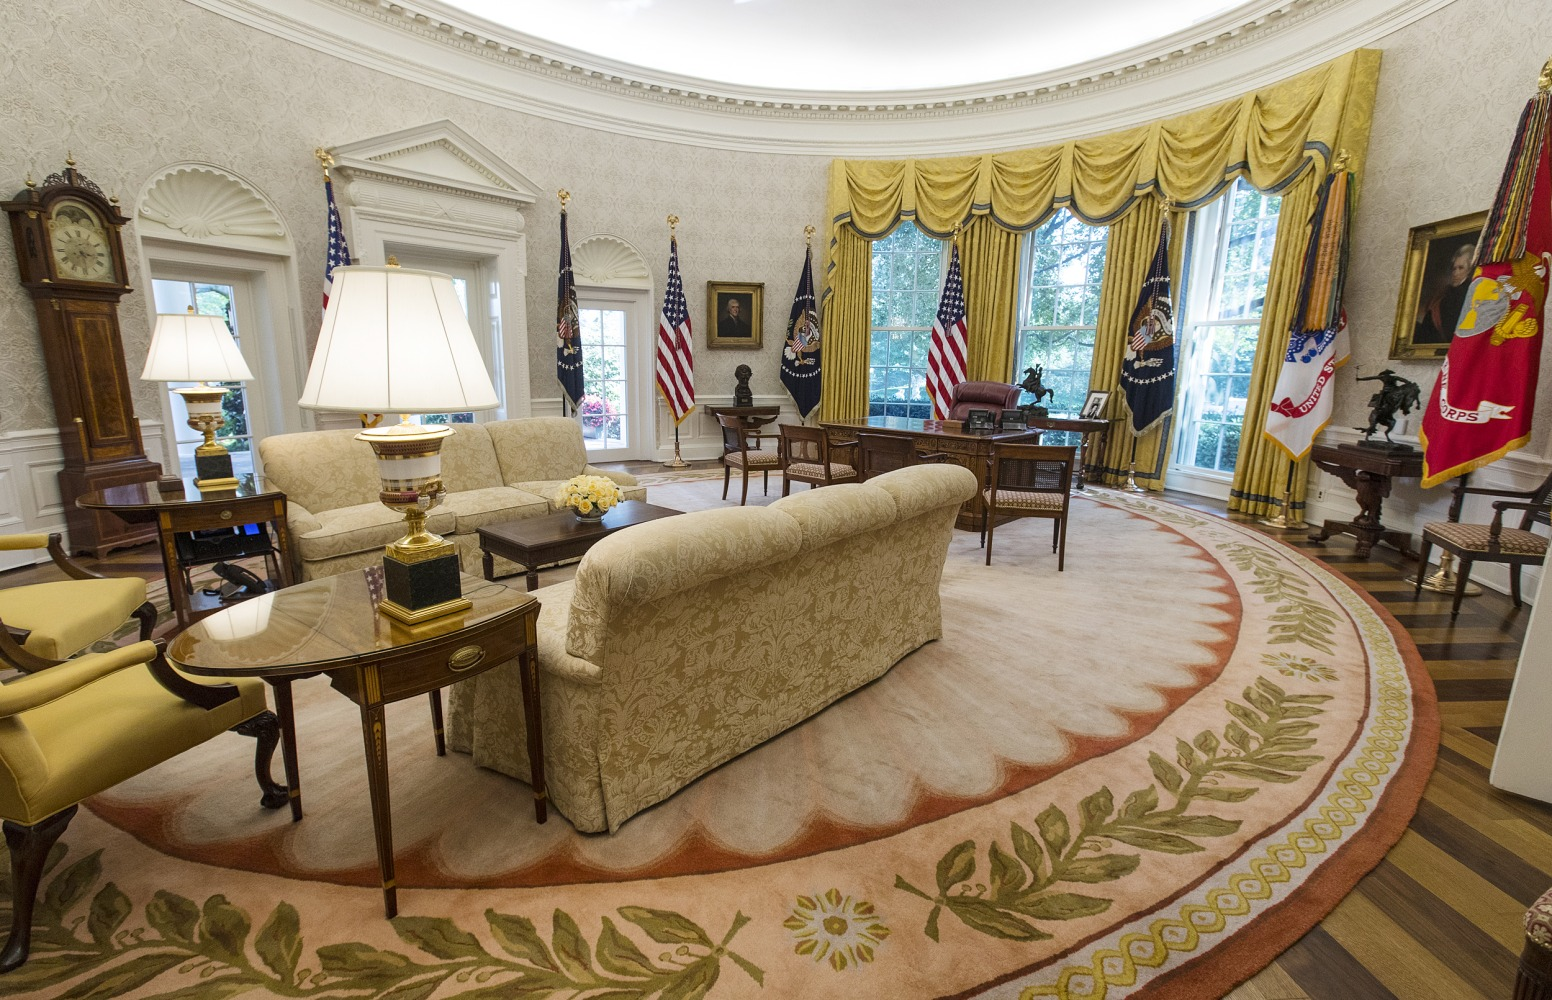 Trump Spending Million On Presidential Furniture Redecorations Nbc News